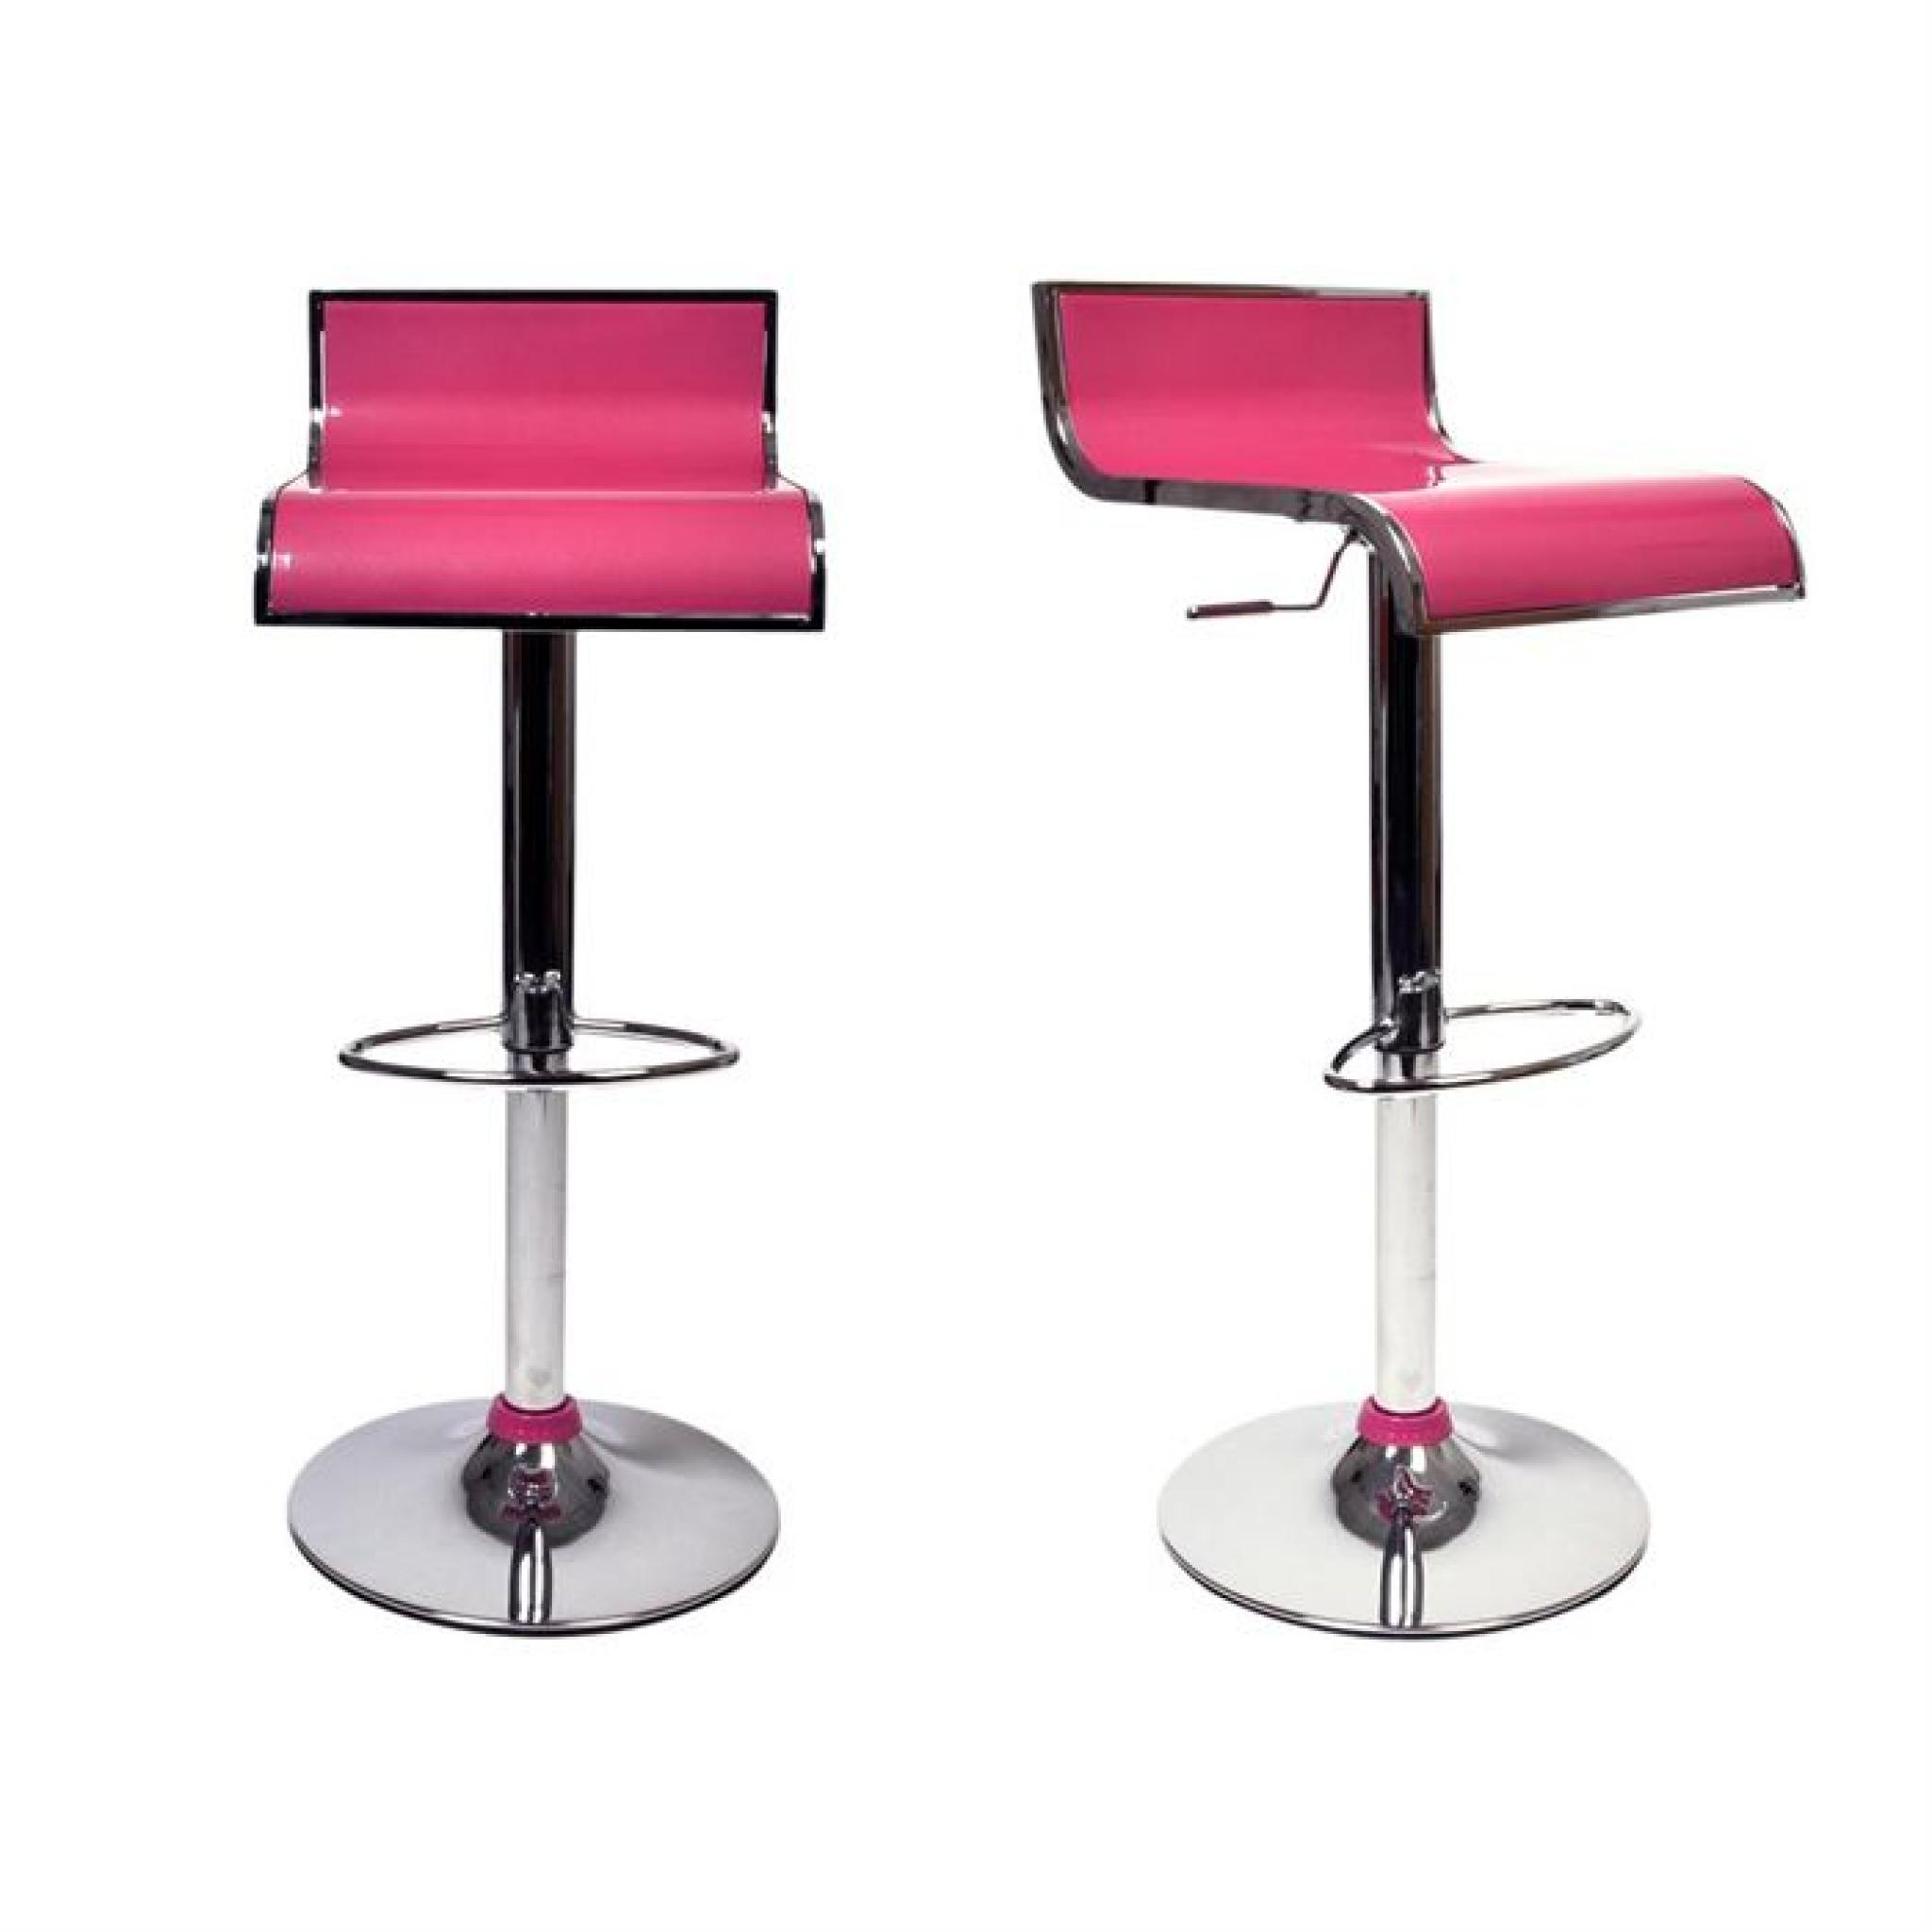 tabourets de bar rose design waves lot de 2 achat vente tabouret de bar pas cher couleur